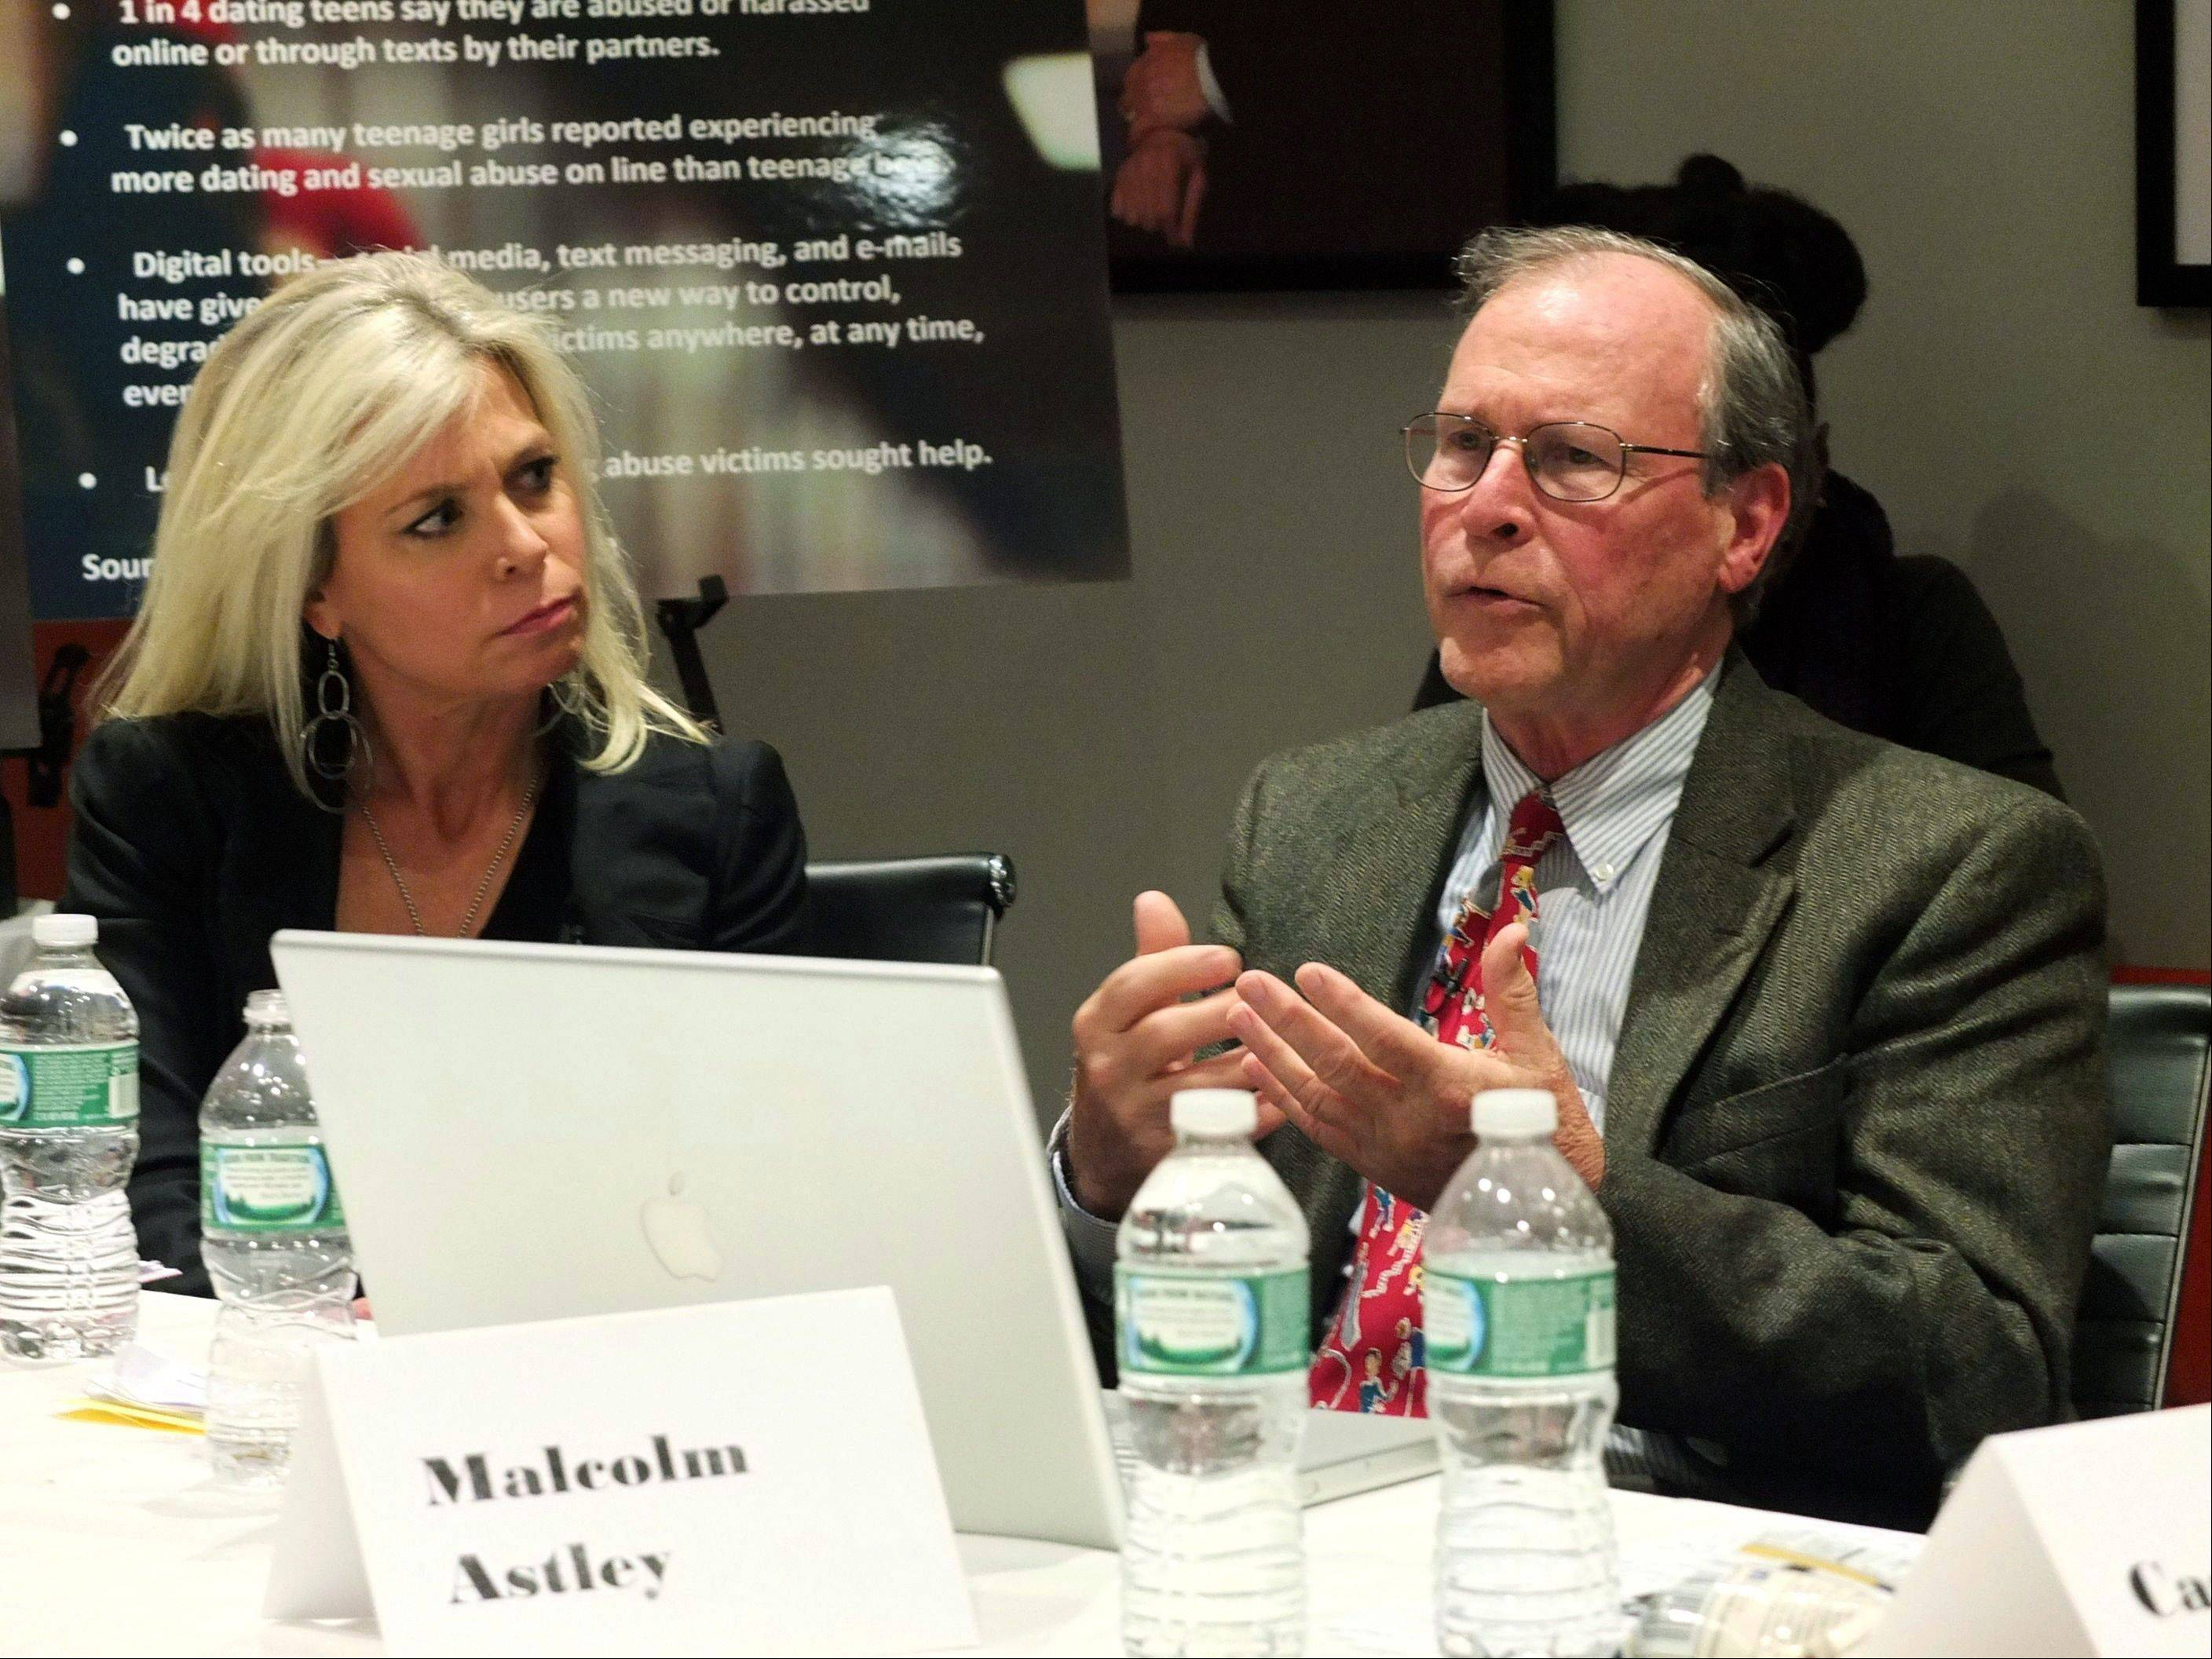 """48 Hours"" correspondent Tracy Smith, left, and Malcolm Astley speak during a panel discussion on the upcoming broadcast of the episode ""Loved to Death."""